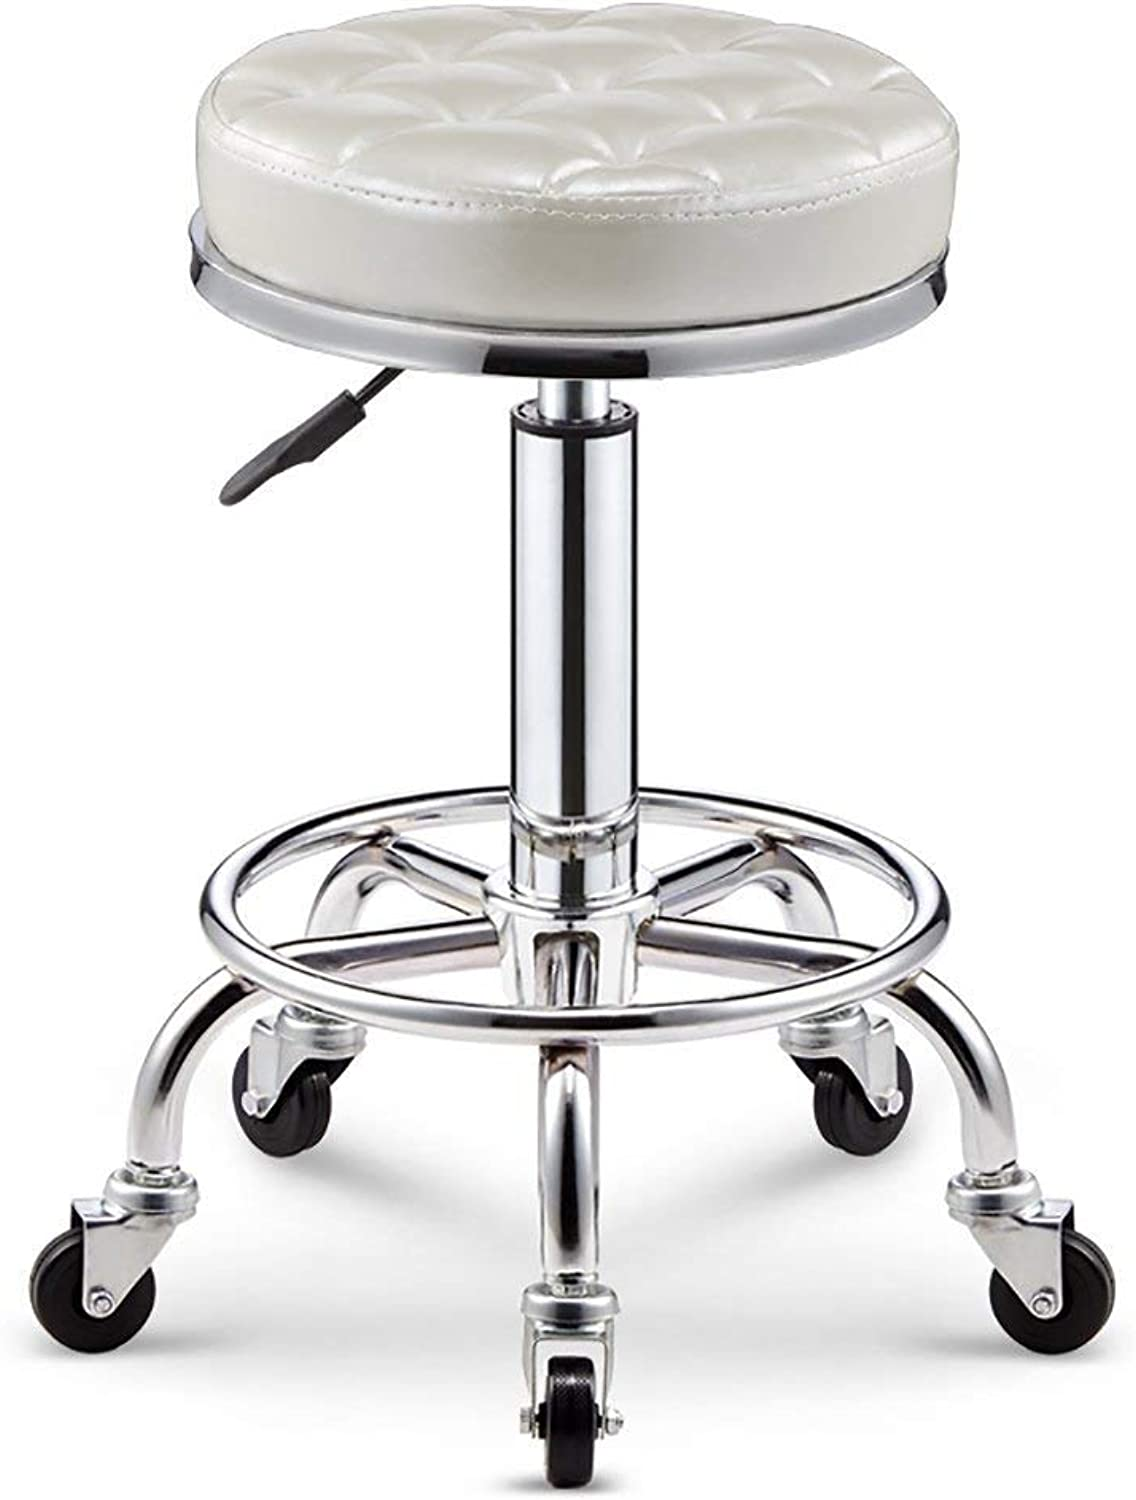 Adjustable Barstools Rolling Swivel Stool for Salon Spa Massage Tattoo Facial Medical Office Chairs with Pu Leather,White